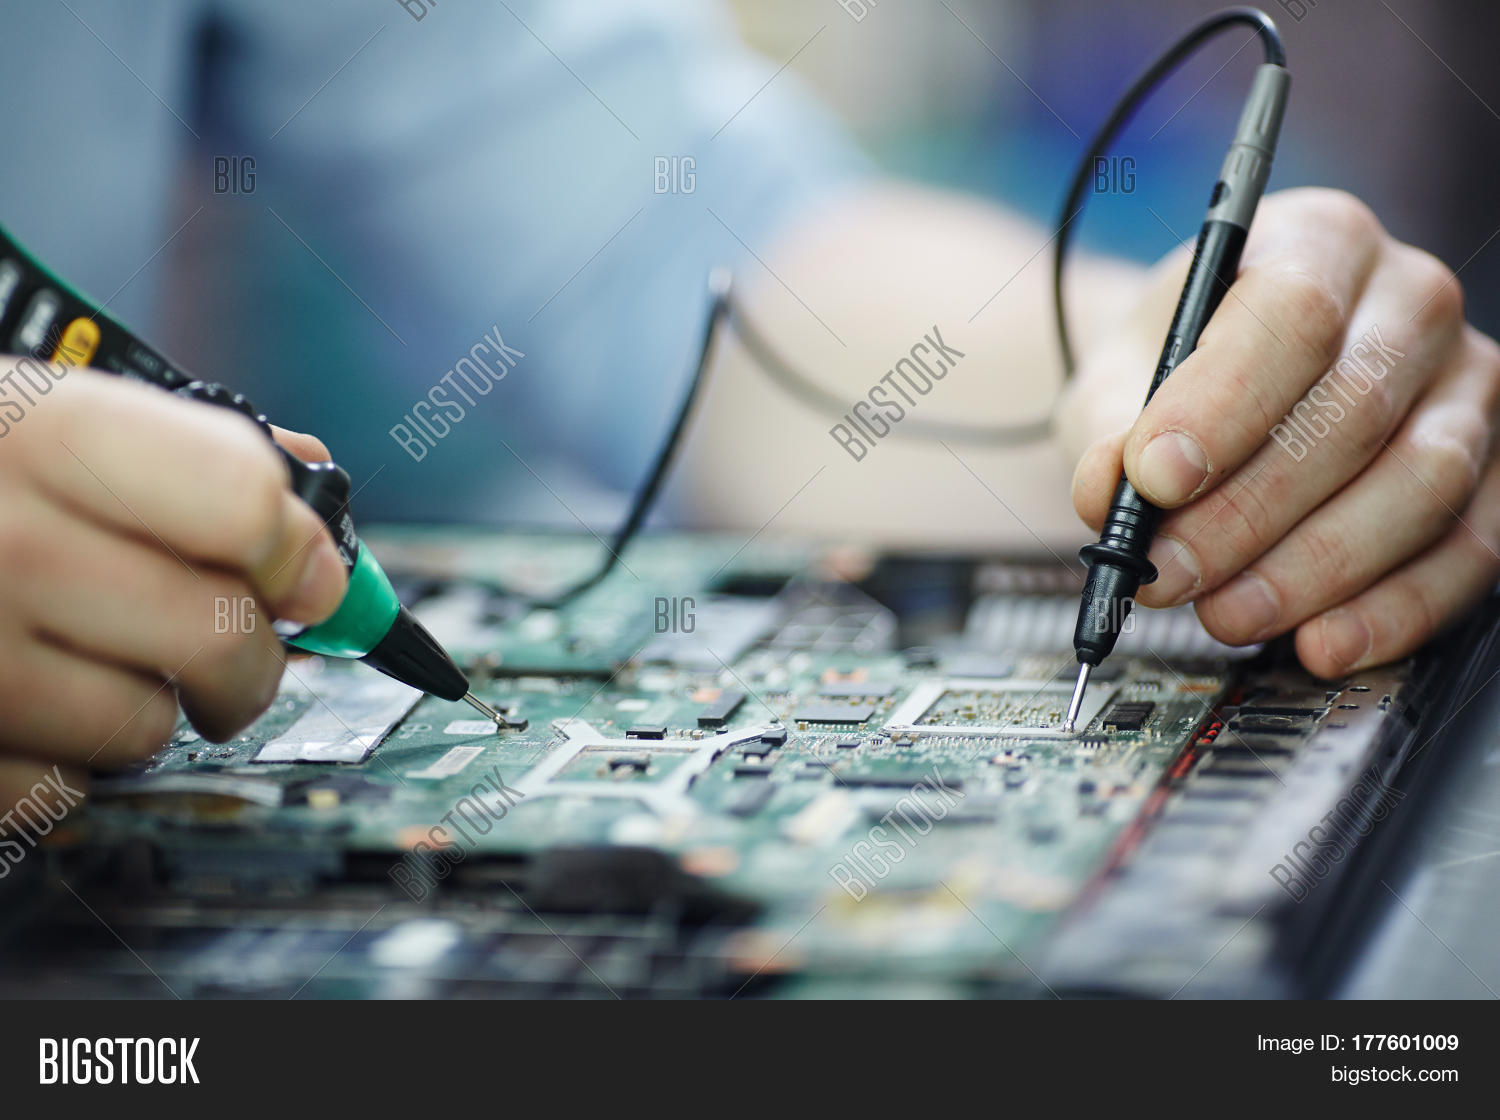 Closeup Shot Male Image Photo Free Trial Bigstock Circuitboardtablejpg Of Hands Testing Electric Current Voltage In Circuit Board Disassembled Laptop Using